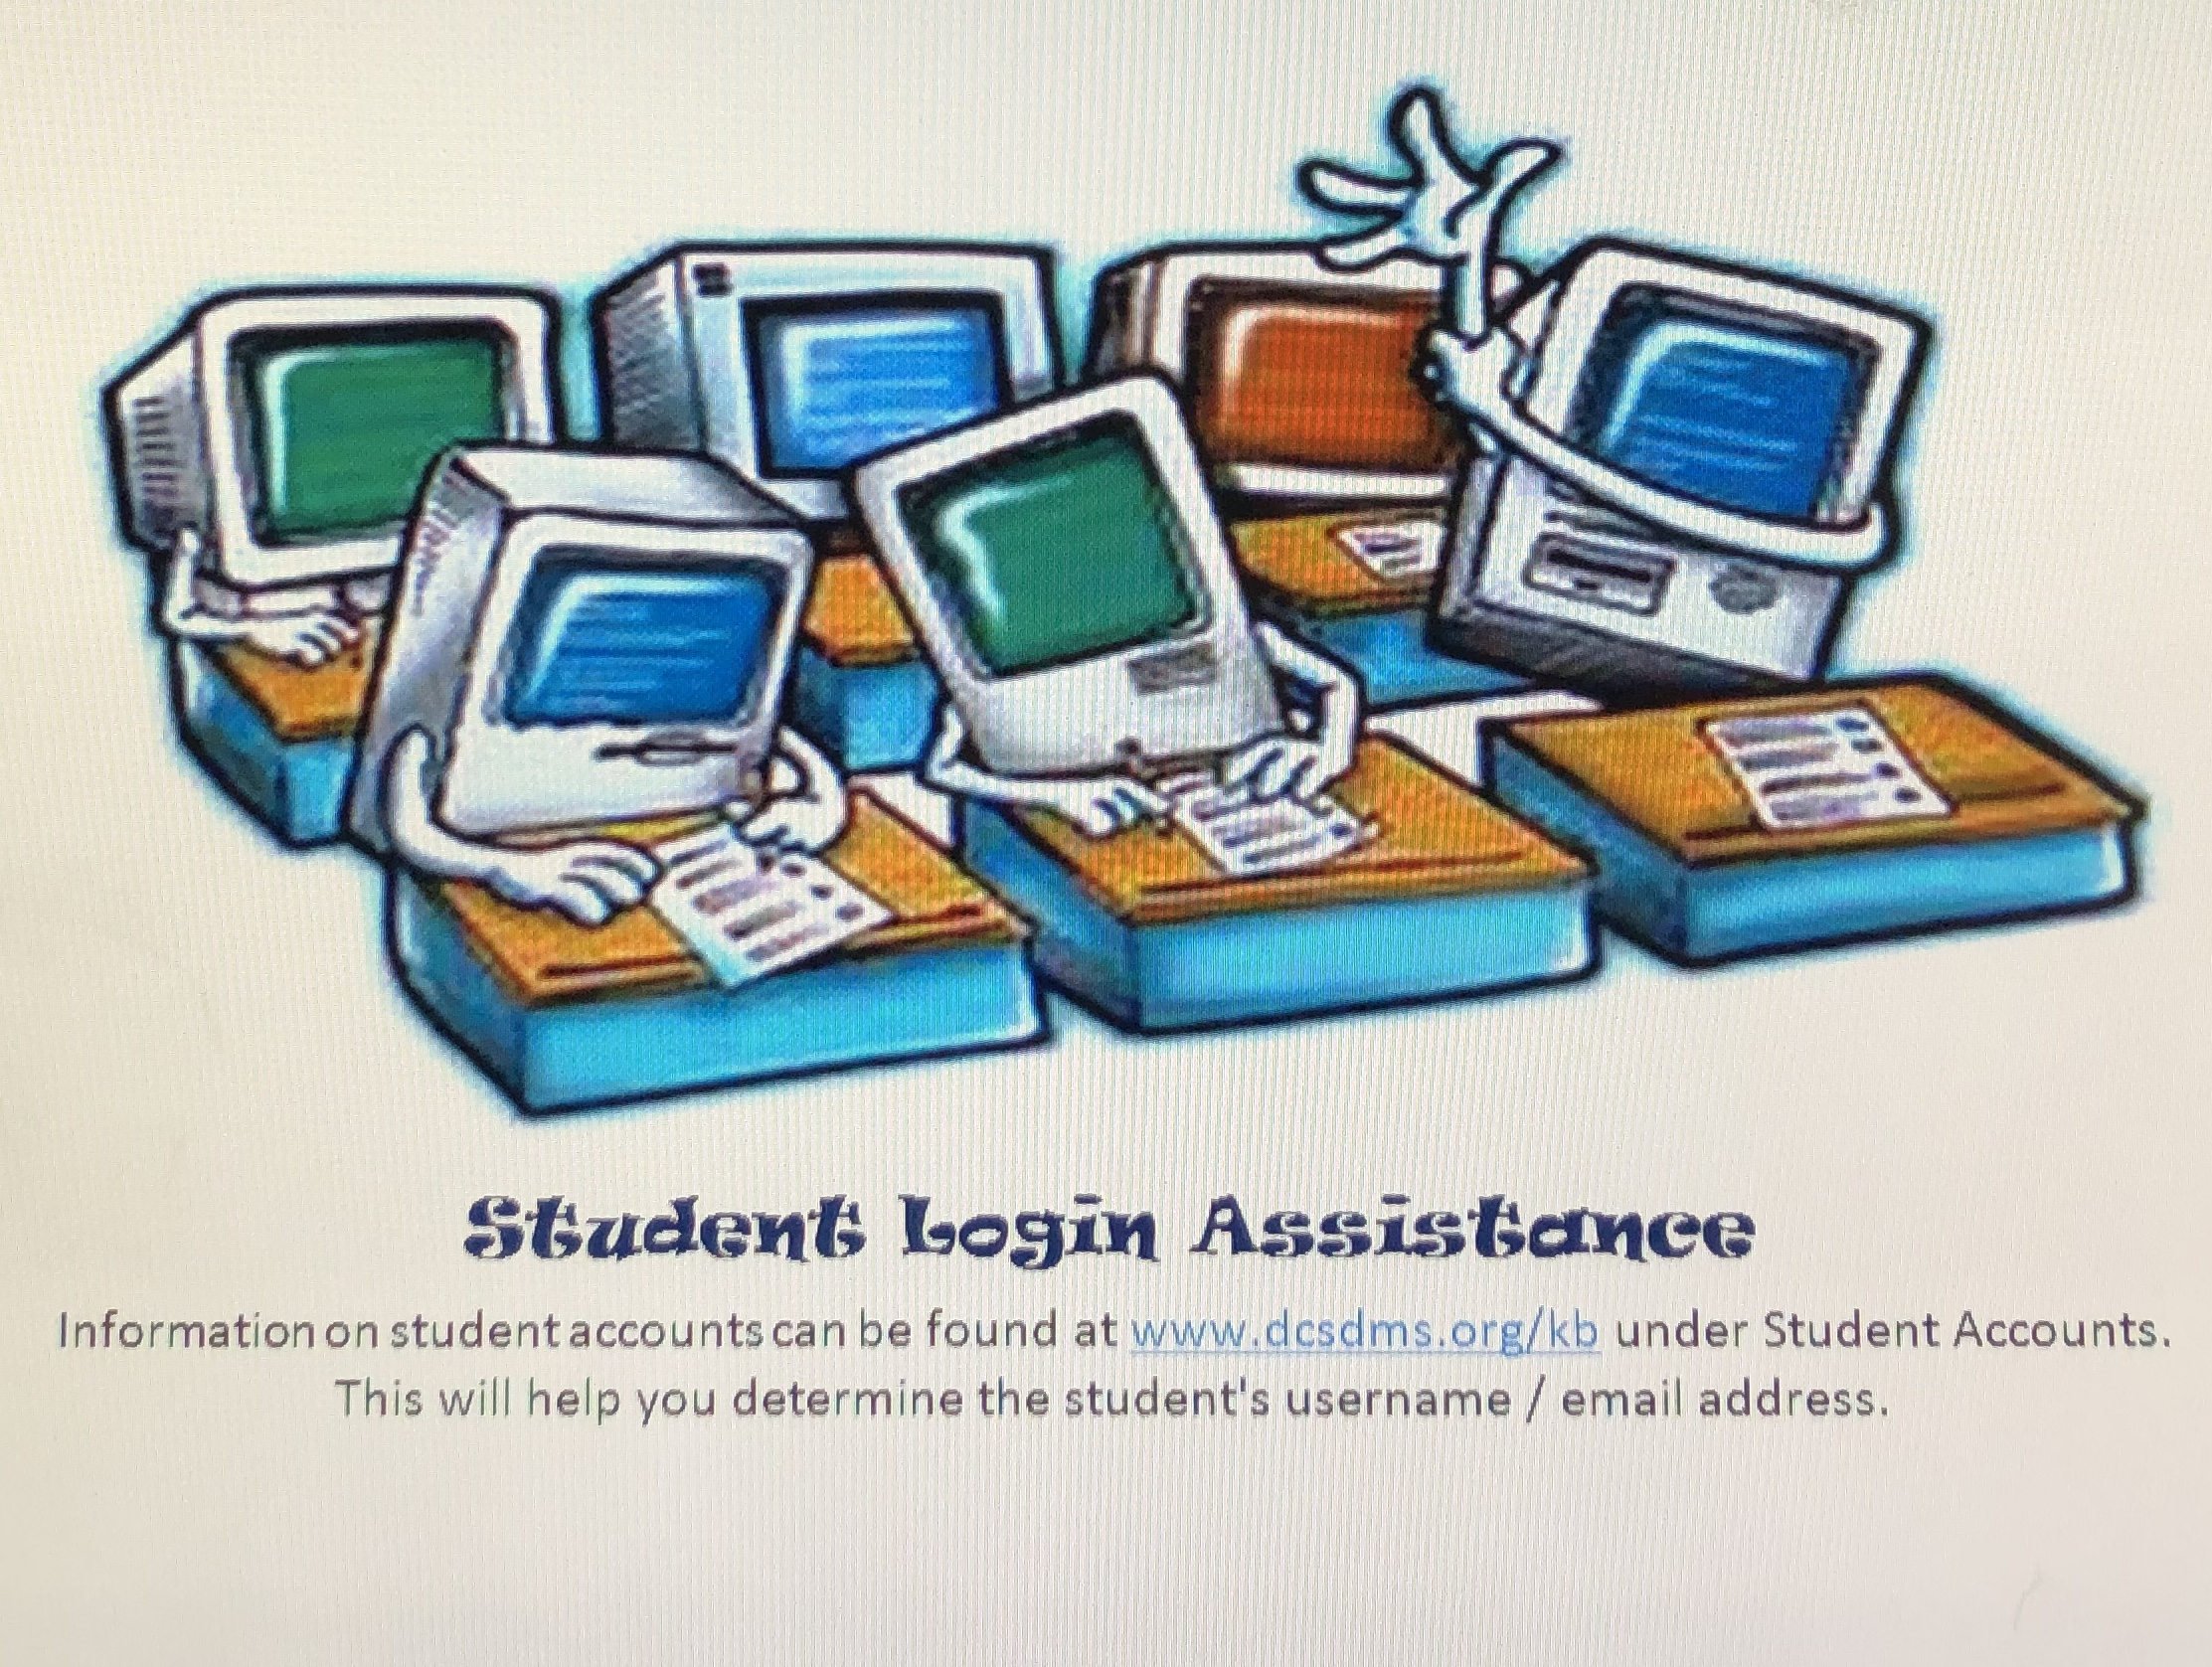 Student account login assistance